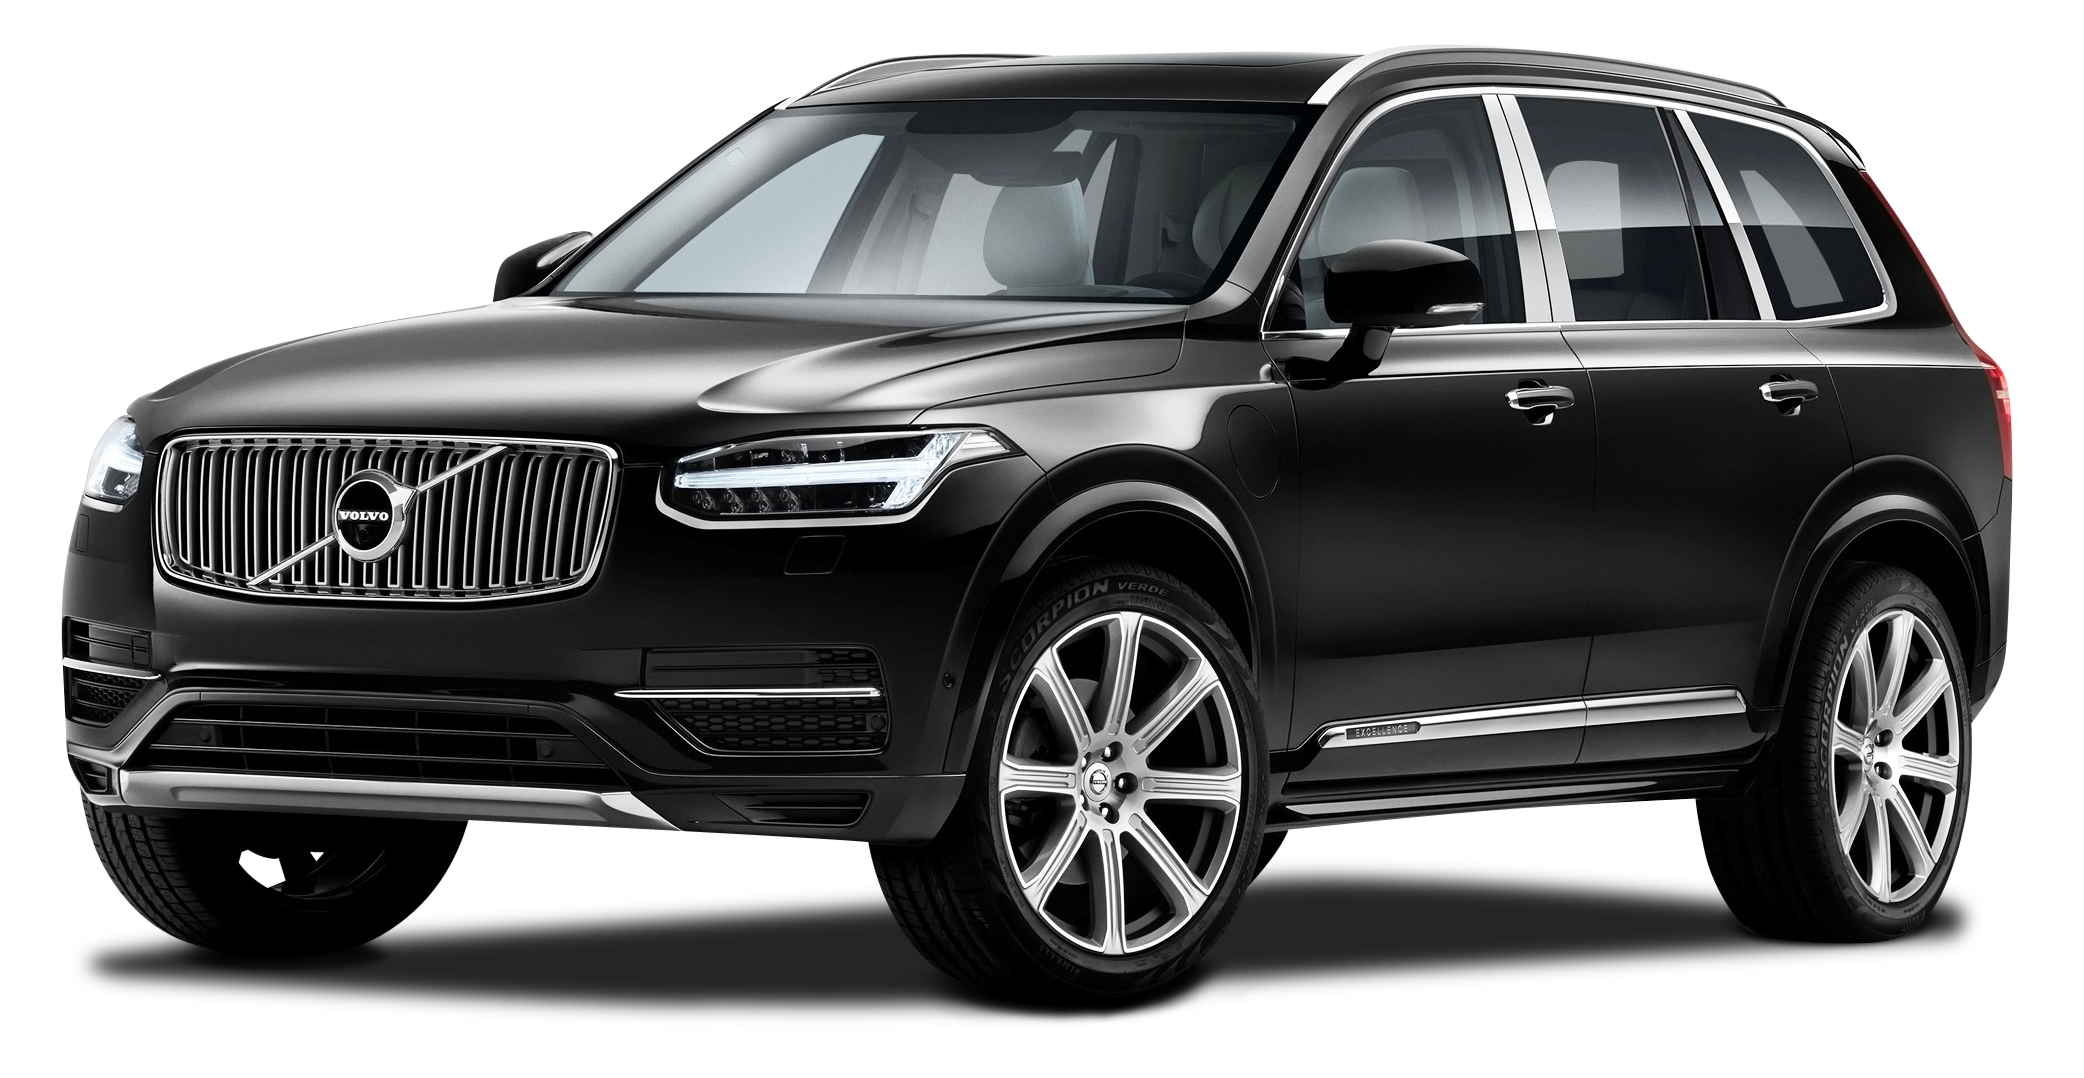 Car clipart black background image black and white stock Black Volvo XC90 Excellence Car PNG Image - PurePNG   Free ... image black and white stock